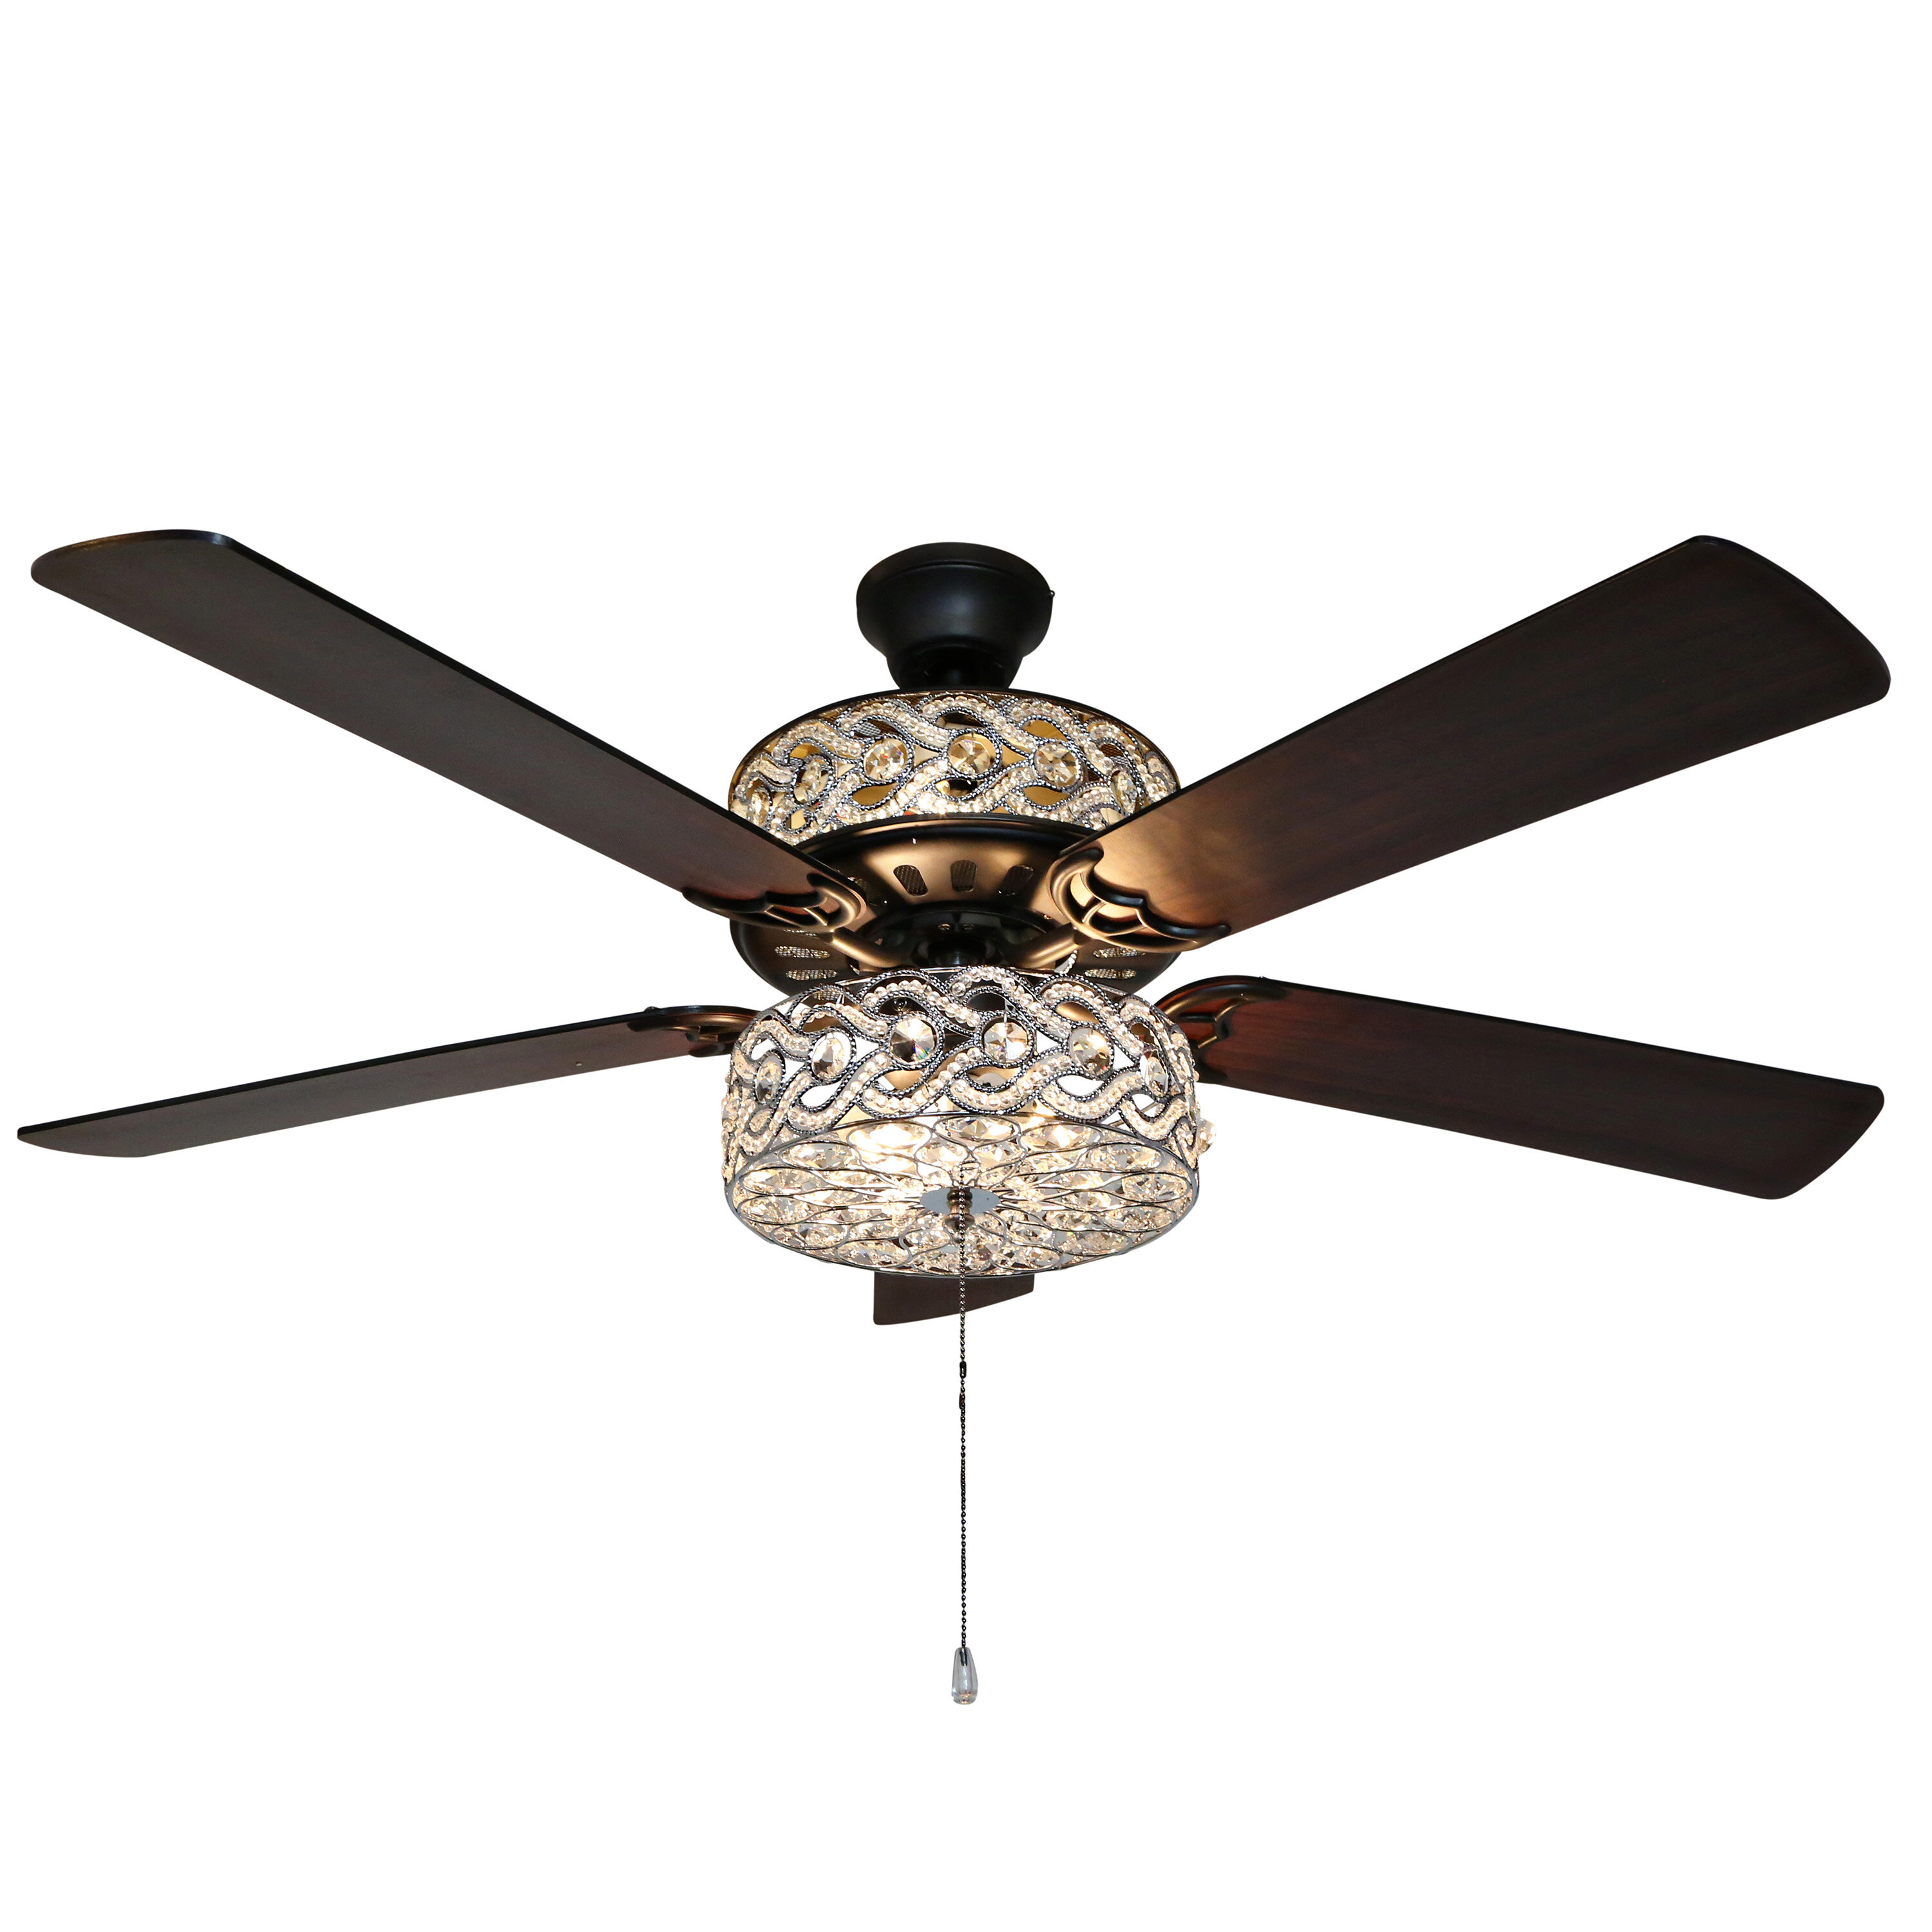 House Of Hampton 52 Elkton 5 Blade Crystal Ceiling Fan With Pull Chain And Light Kit Included Reviews Wayfair